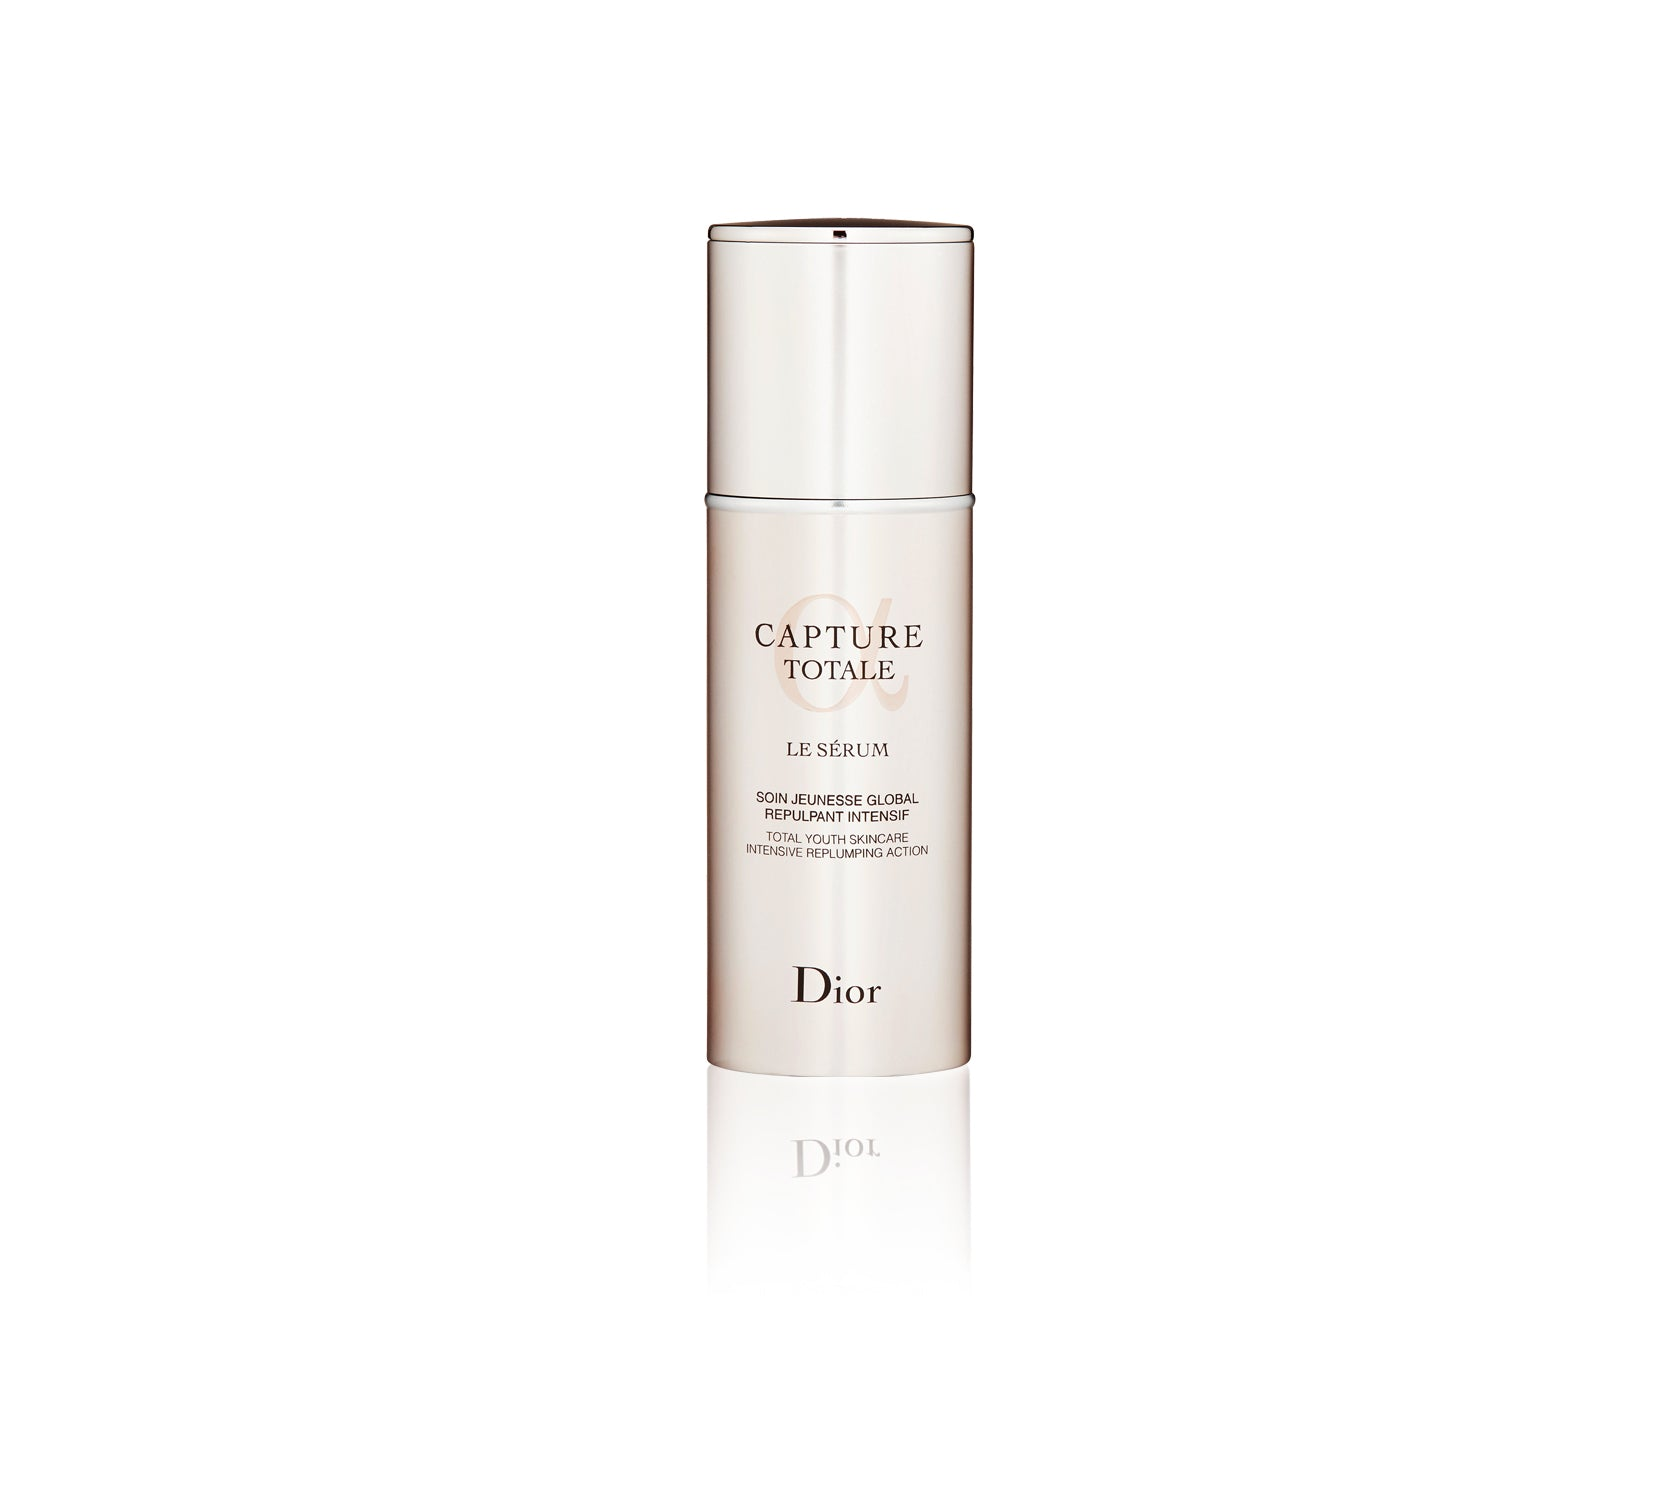 capture-totale-le-serum-total-youth-skincare-intensive-replumping-action